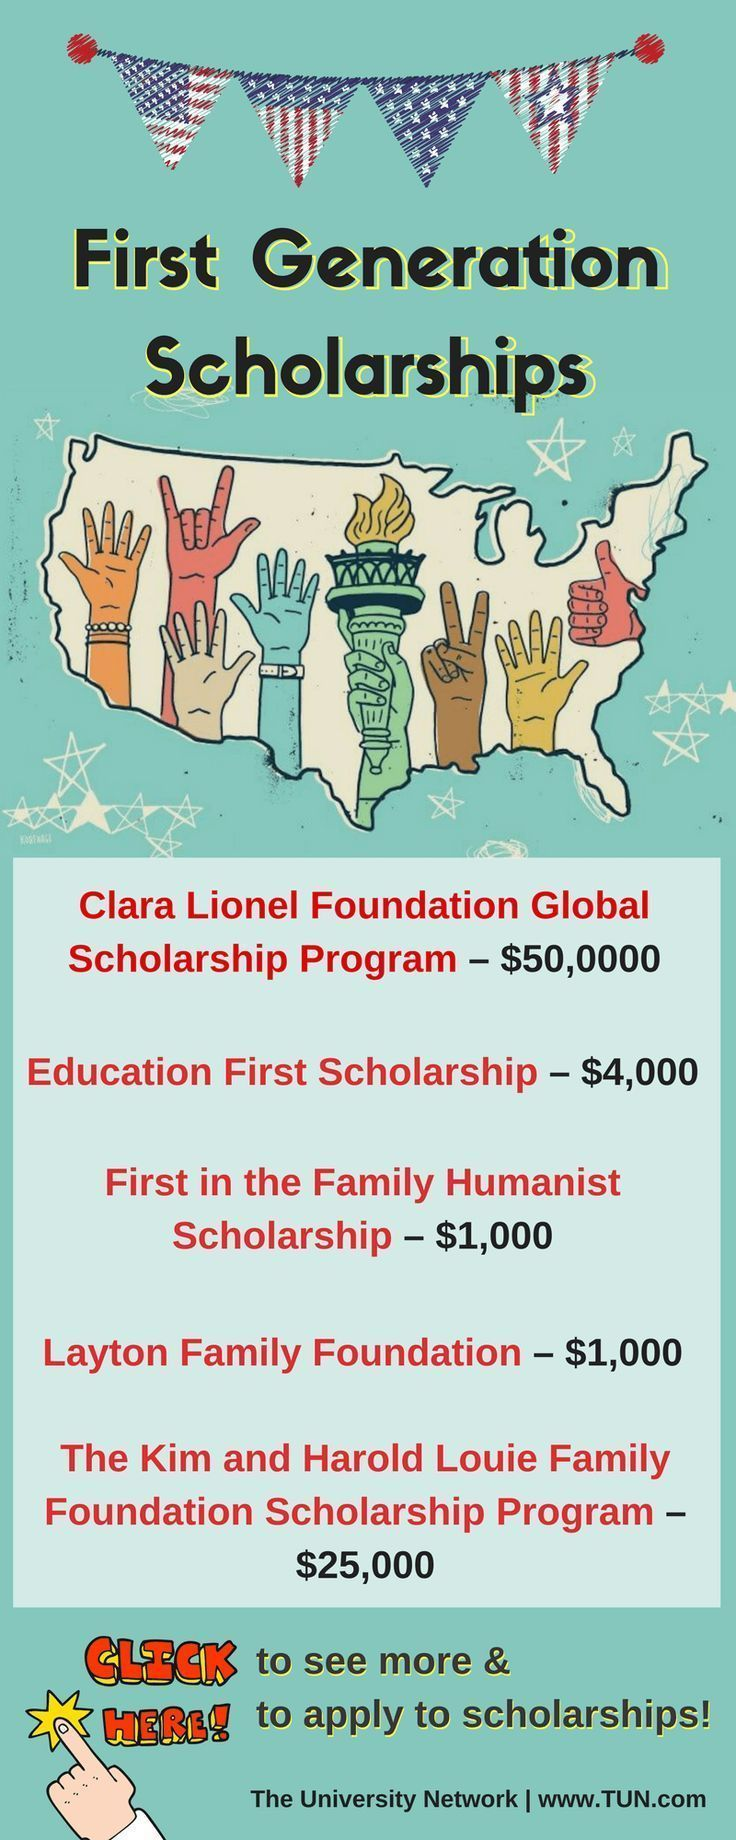 first generation scholarship Excerpt: the tmcf   walmart foundation first-generation scholarship program will provide scholarships for first-year students who are the first in their families to attend college and will attend tmcf member-schools from fall 2018 - spring 2019 academic year.